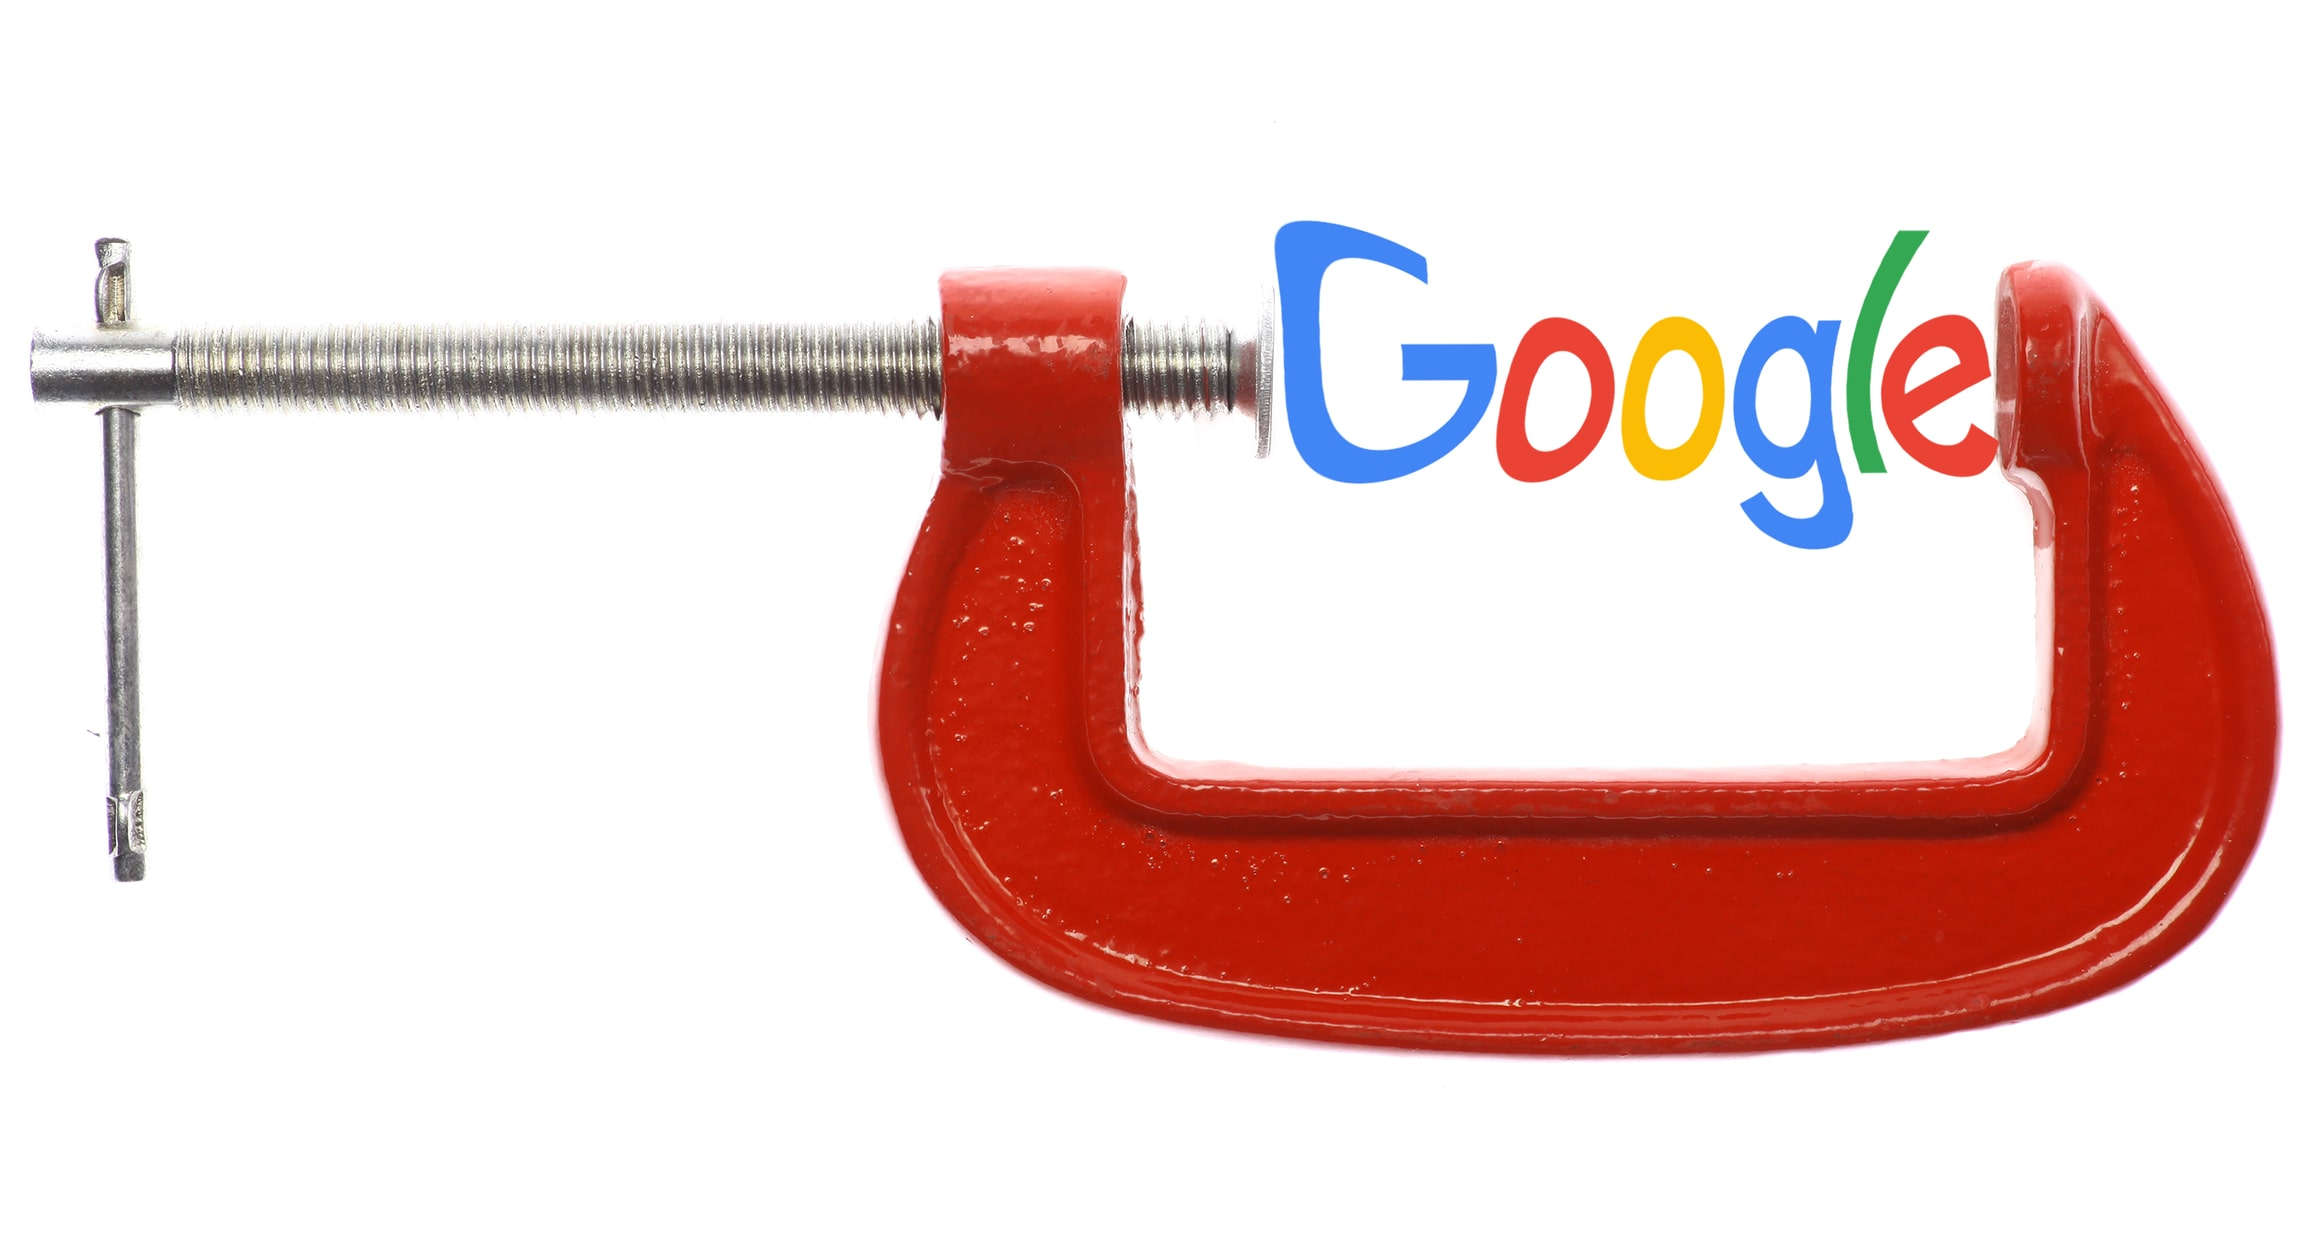 Branding googlelogo 2x googlelogo_color_120x44dp download.